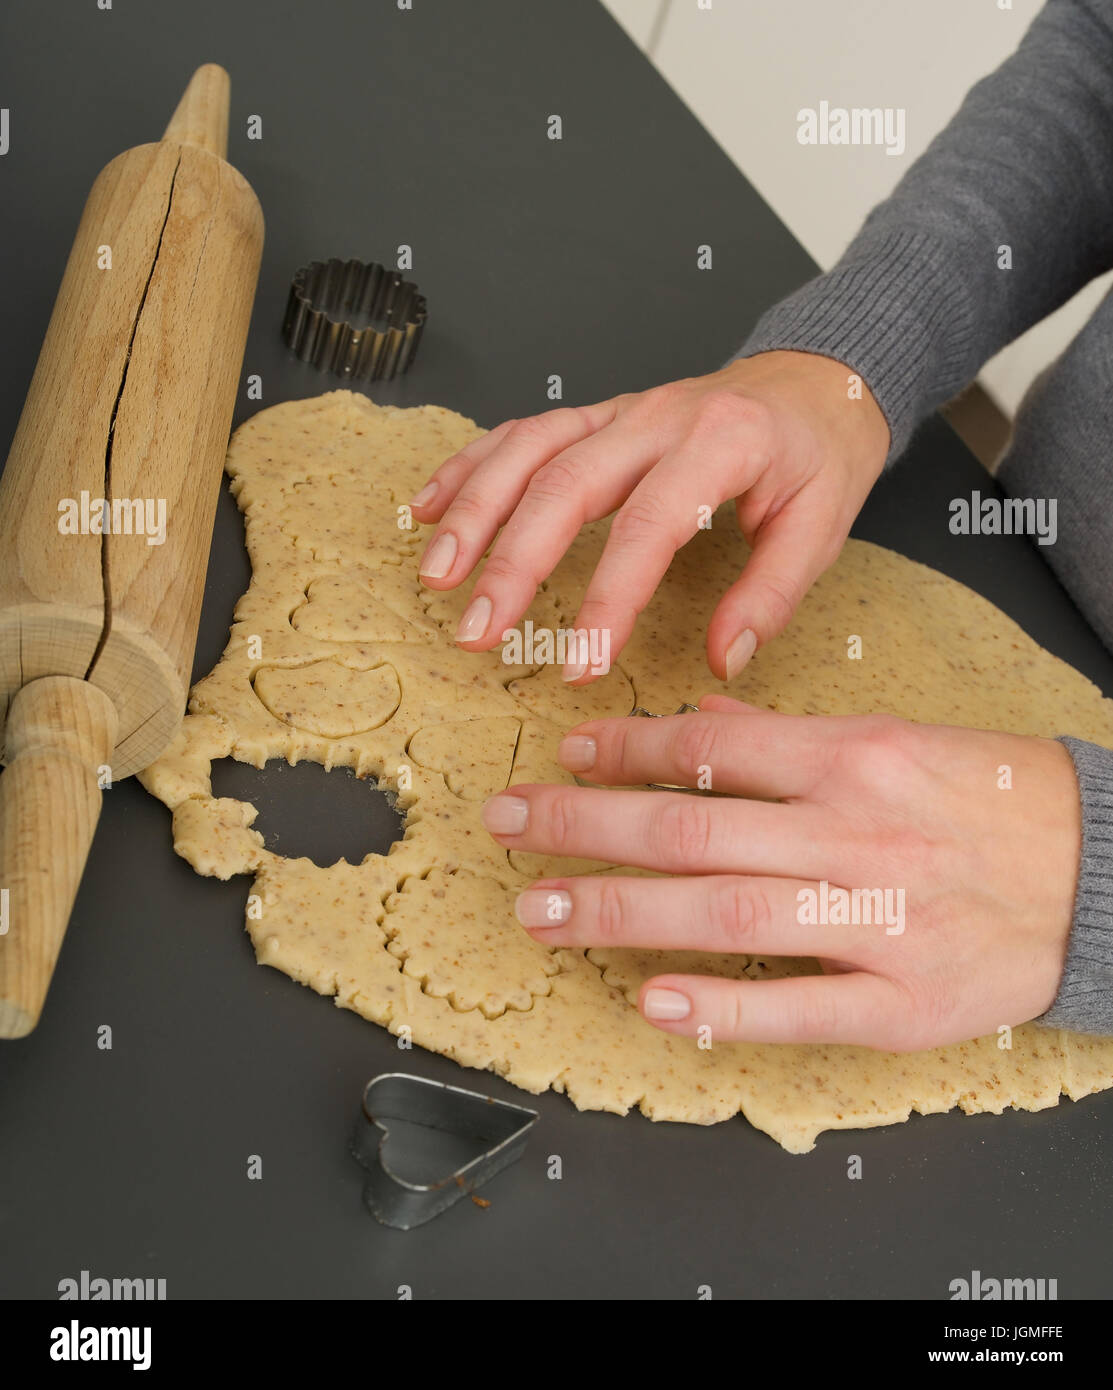 Biscuits dig up - Punching out biscuits, Kekse ausstechen - Punching out biscuits Stock Photo